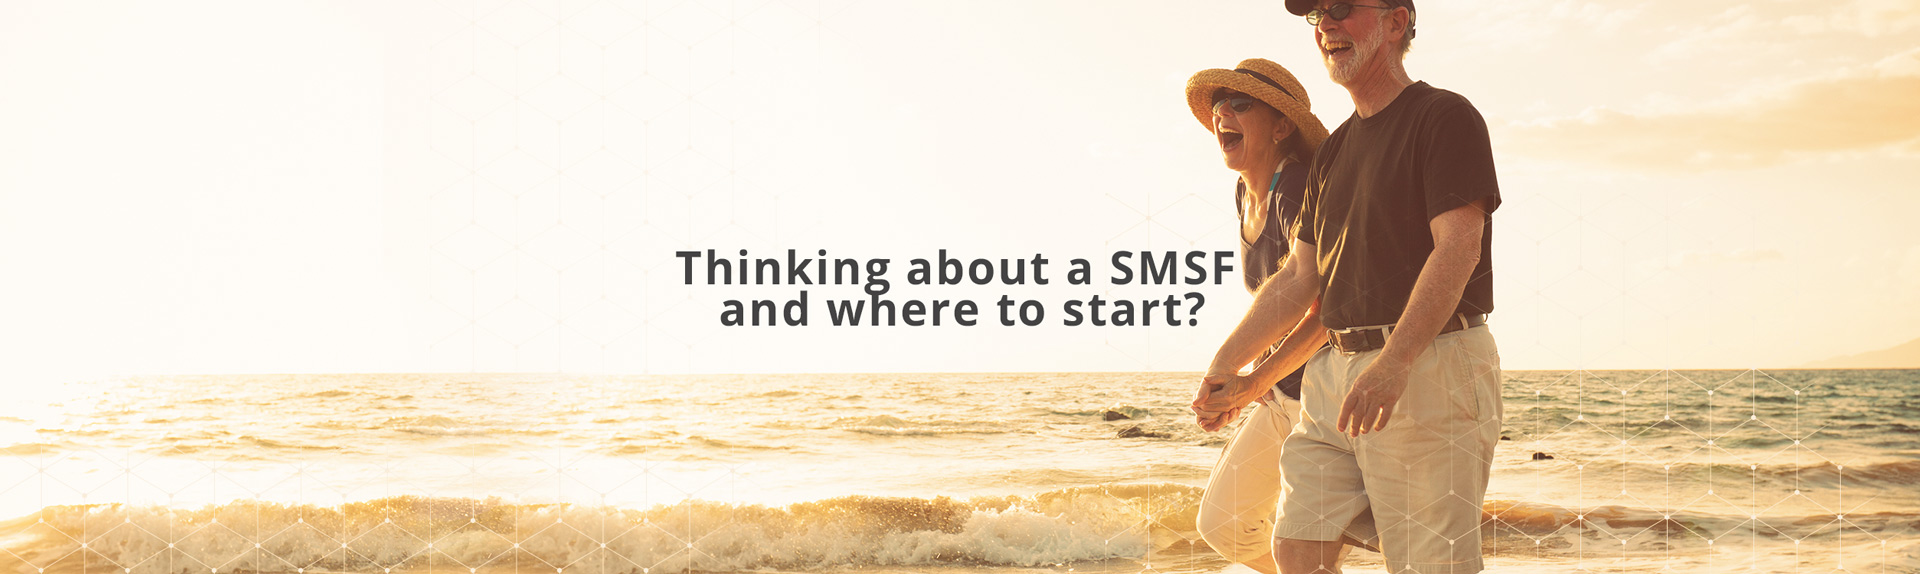 Thinking about a SMSF and where to start